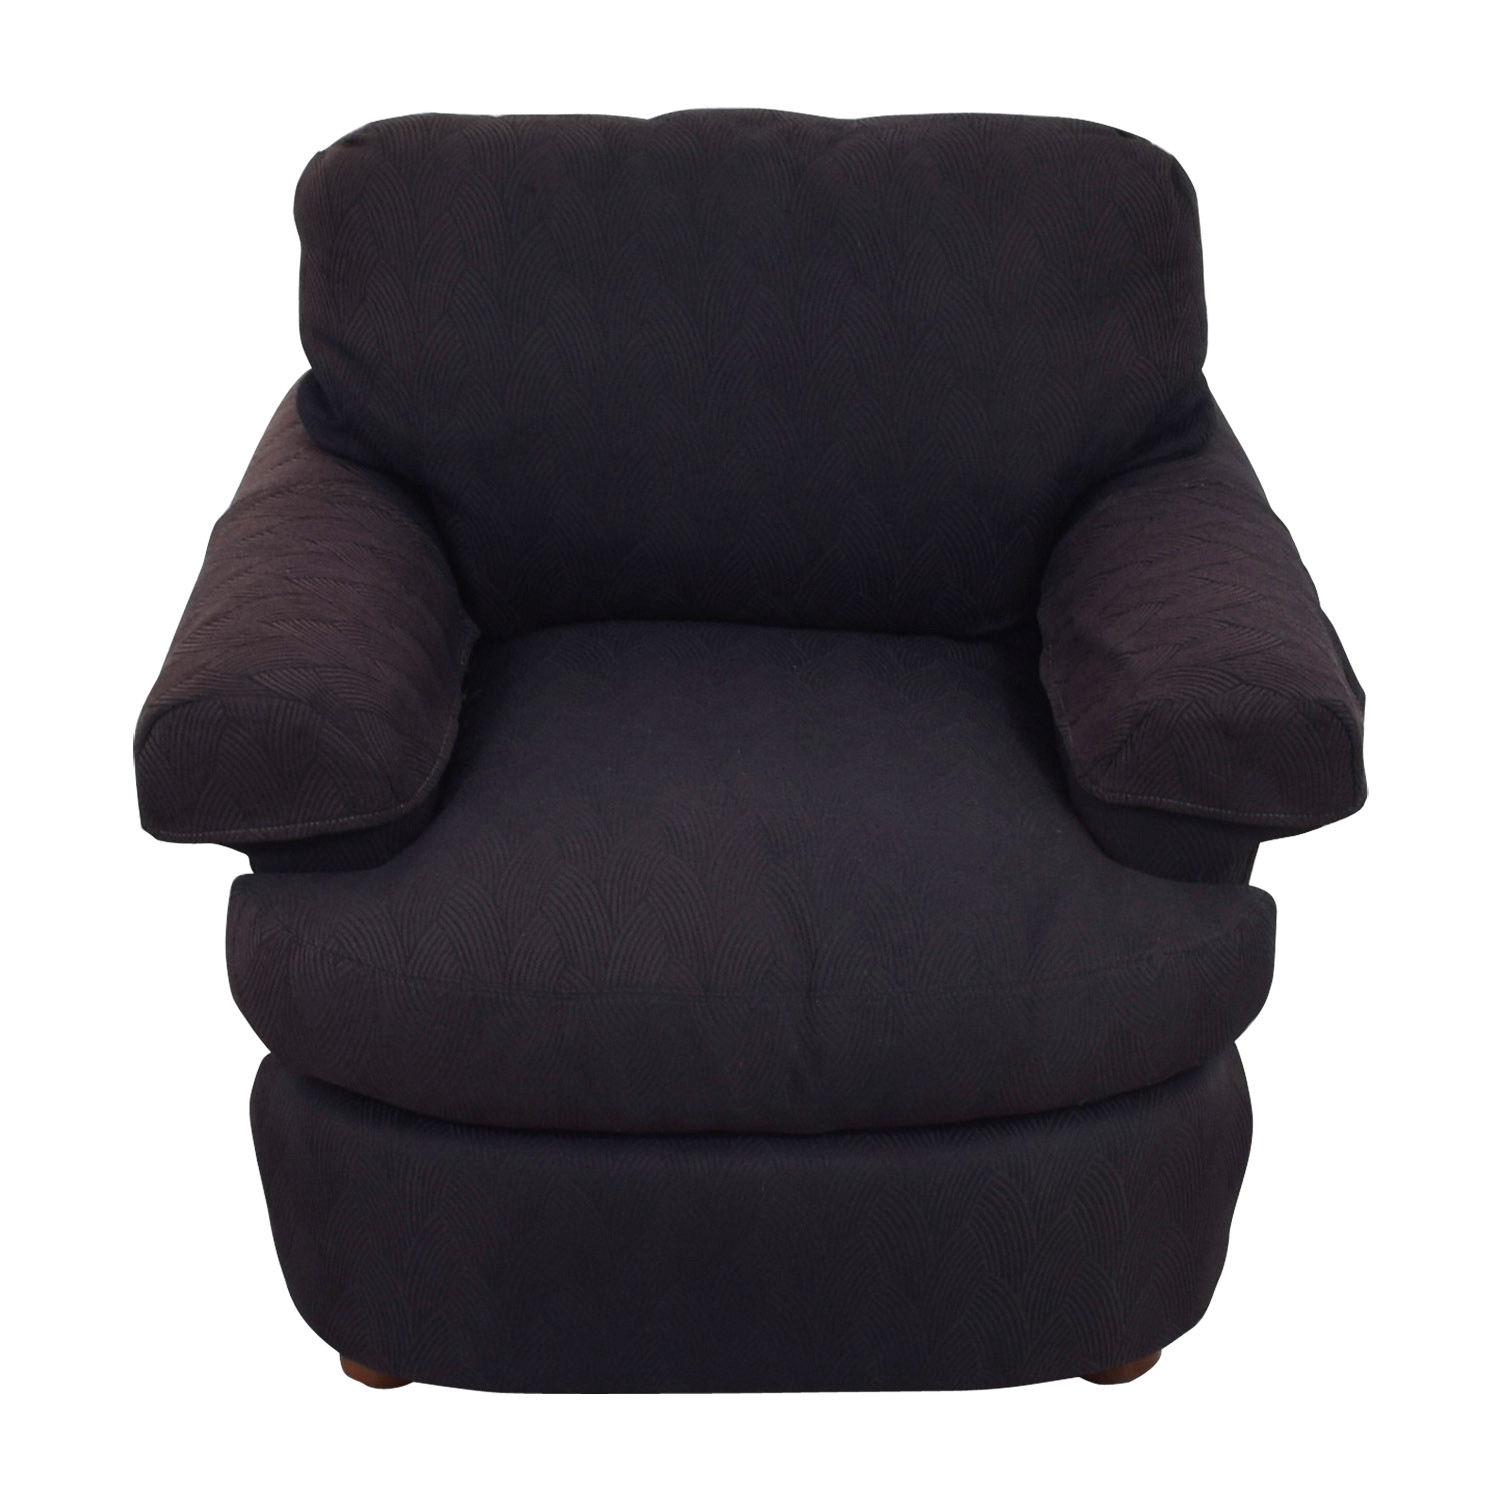 Dark Brown Felt Accent Chair second hand